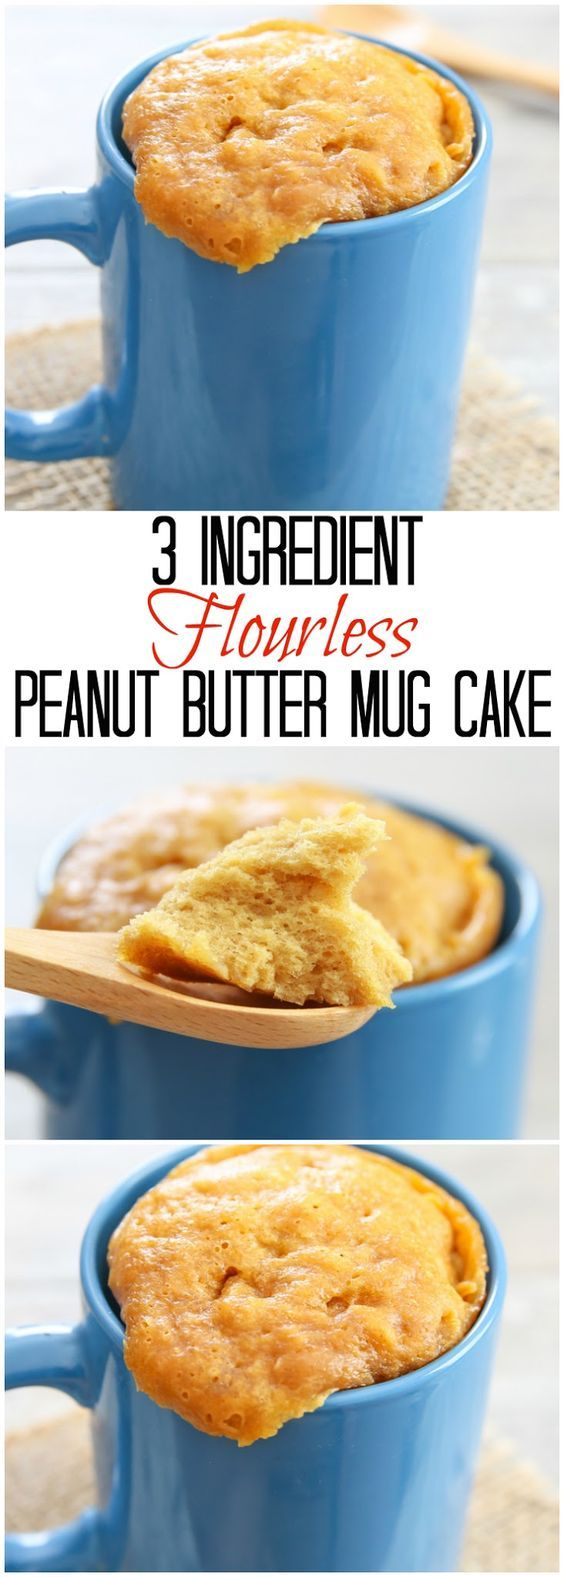 3 Ingredient Flourless Peanut Butter Mug Cake. Easy and ready in 5 minutes and you won't believe it is flourless!: